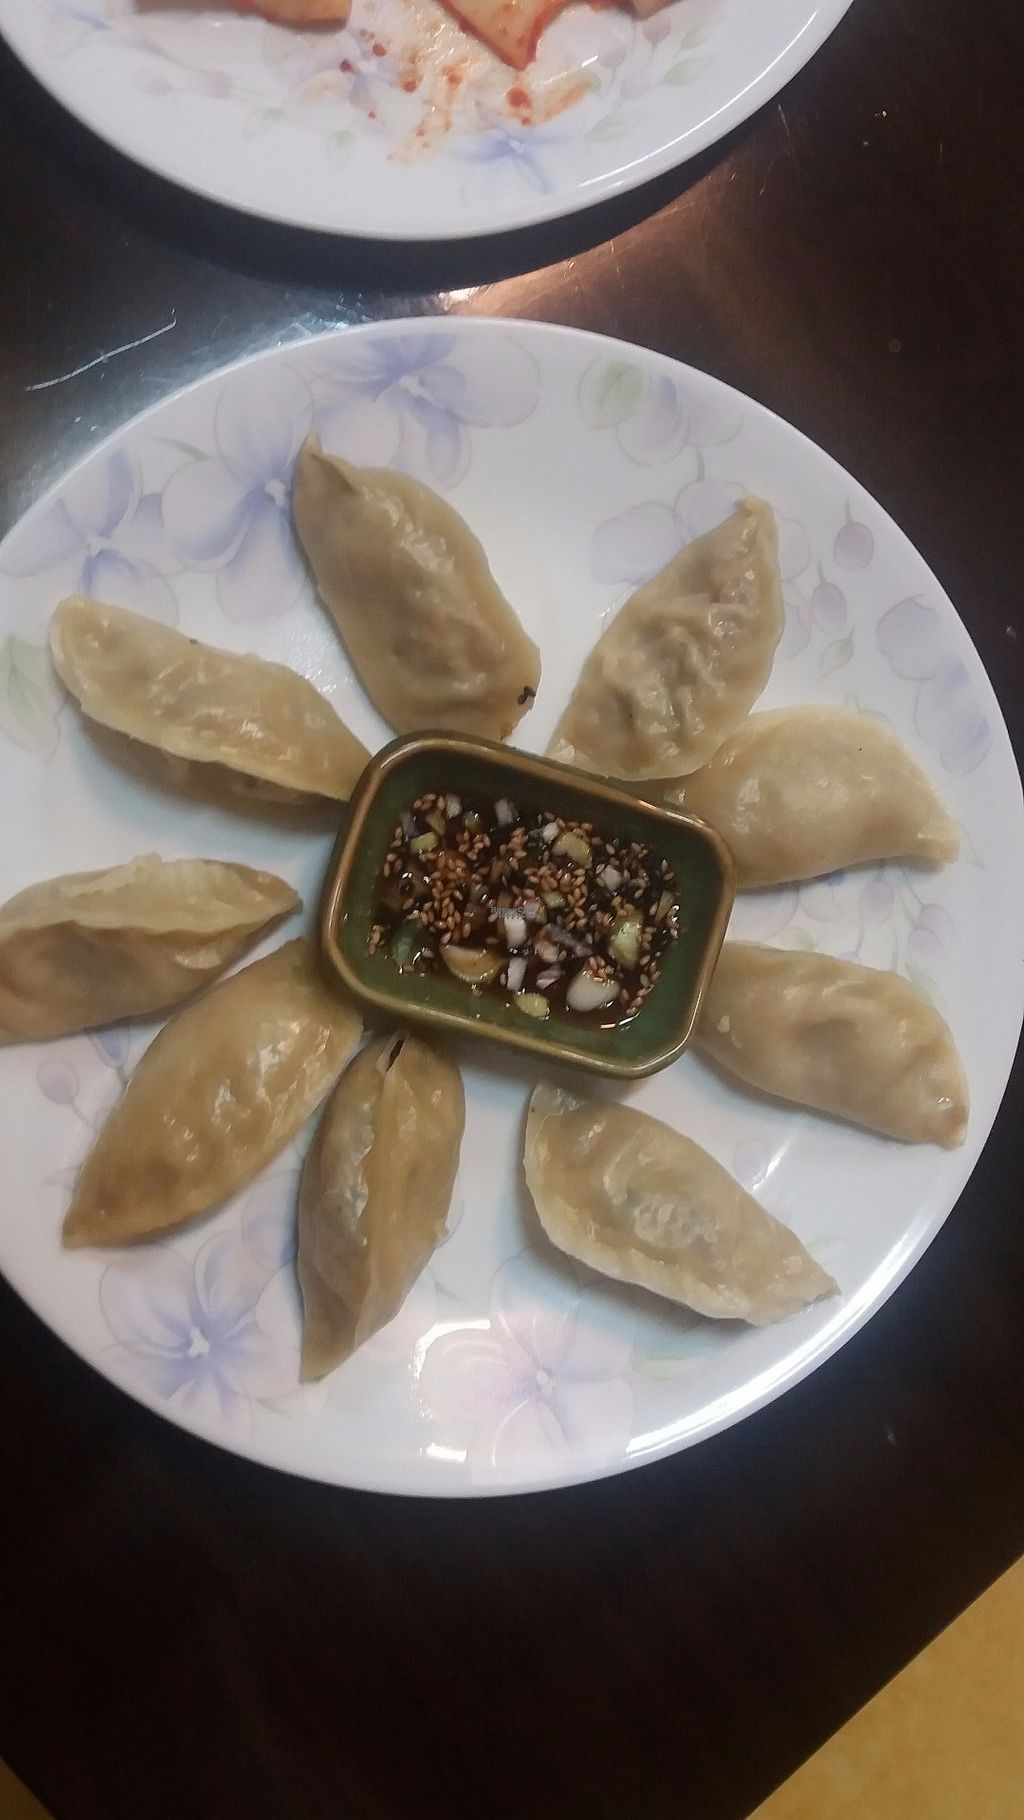 """Photo of Chorokddeul - Green Field - 초록뜰식당  by <a href=""""/members/profile/rburrke"""">rburrke</a> <br/>Dumplings <br/> October 10, 2016  - <a href='/contact/abuse/image/64286/180951'>Report</a>"""